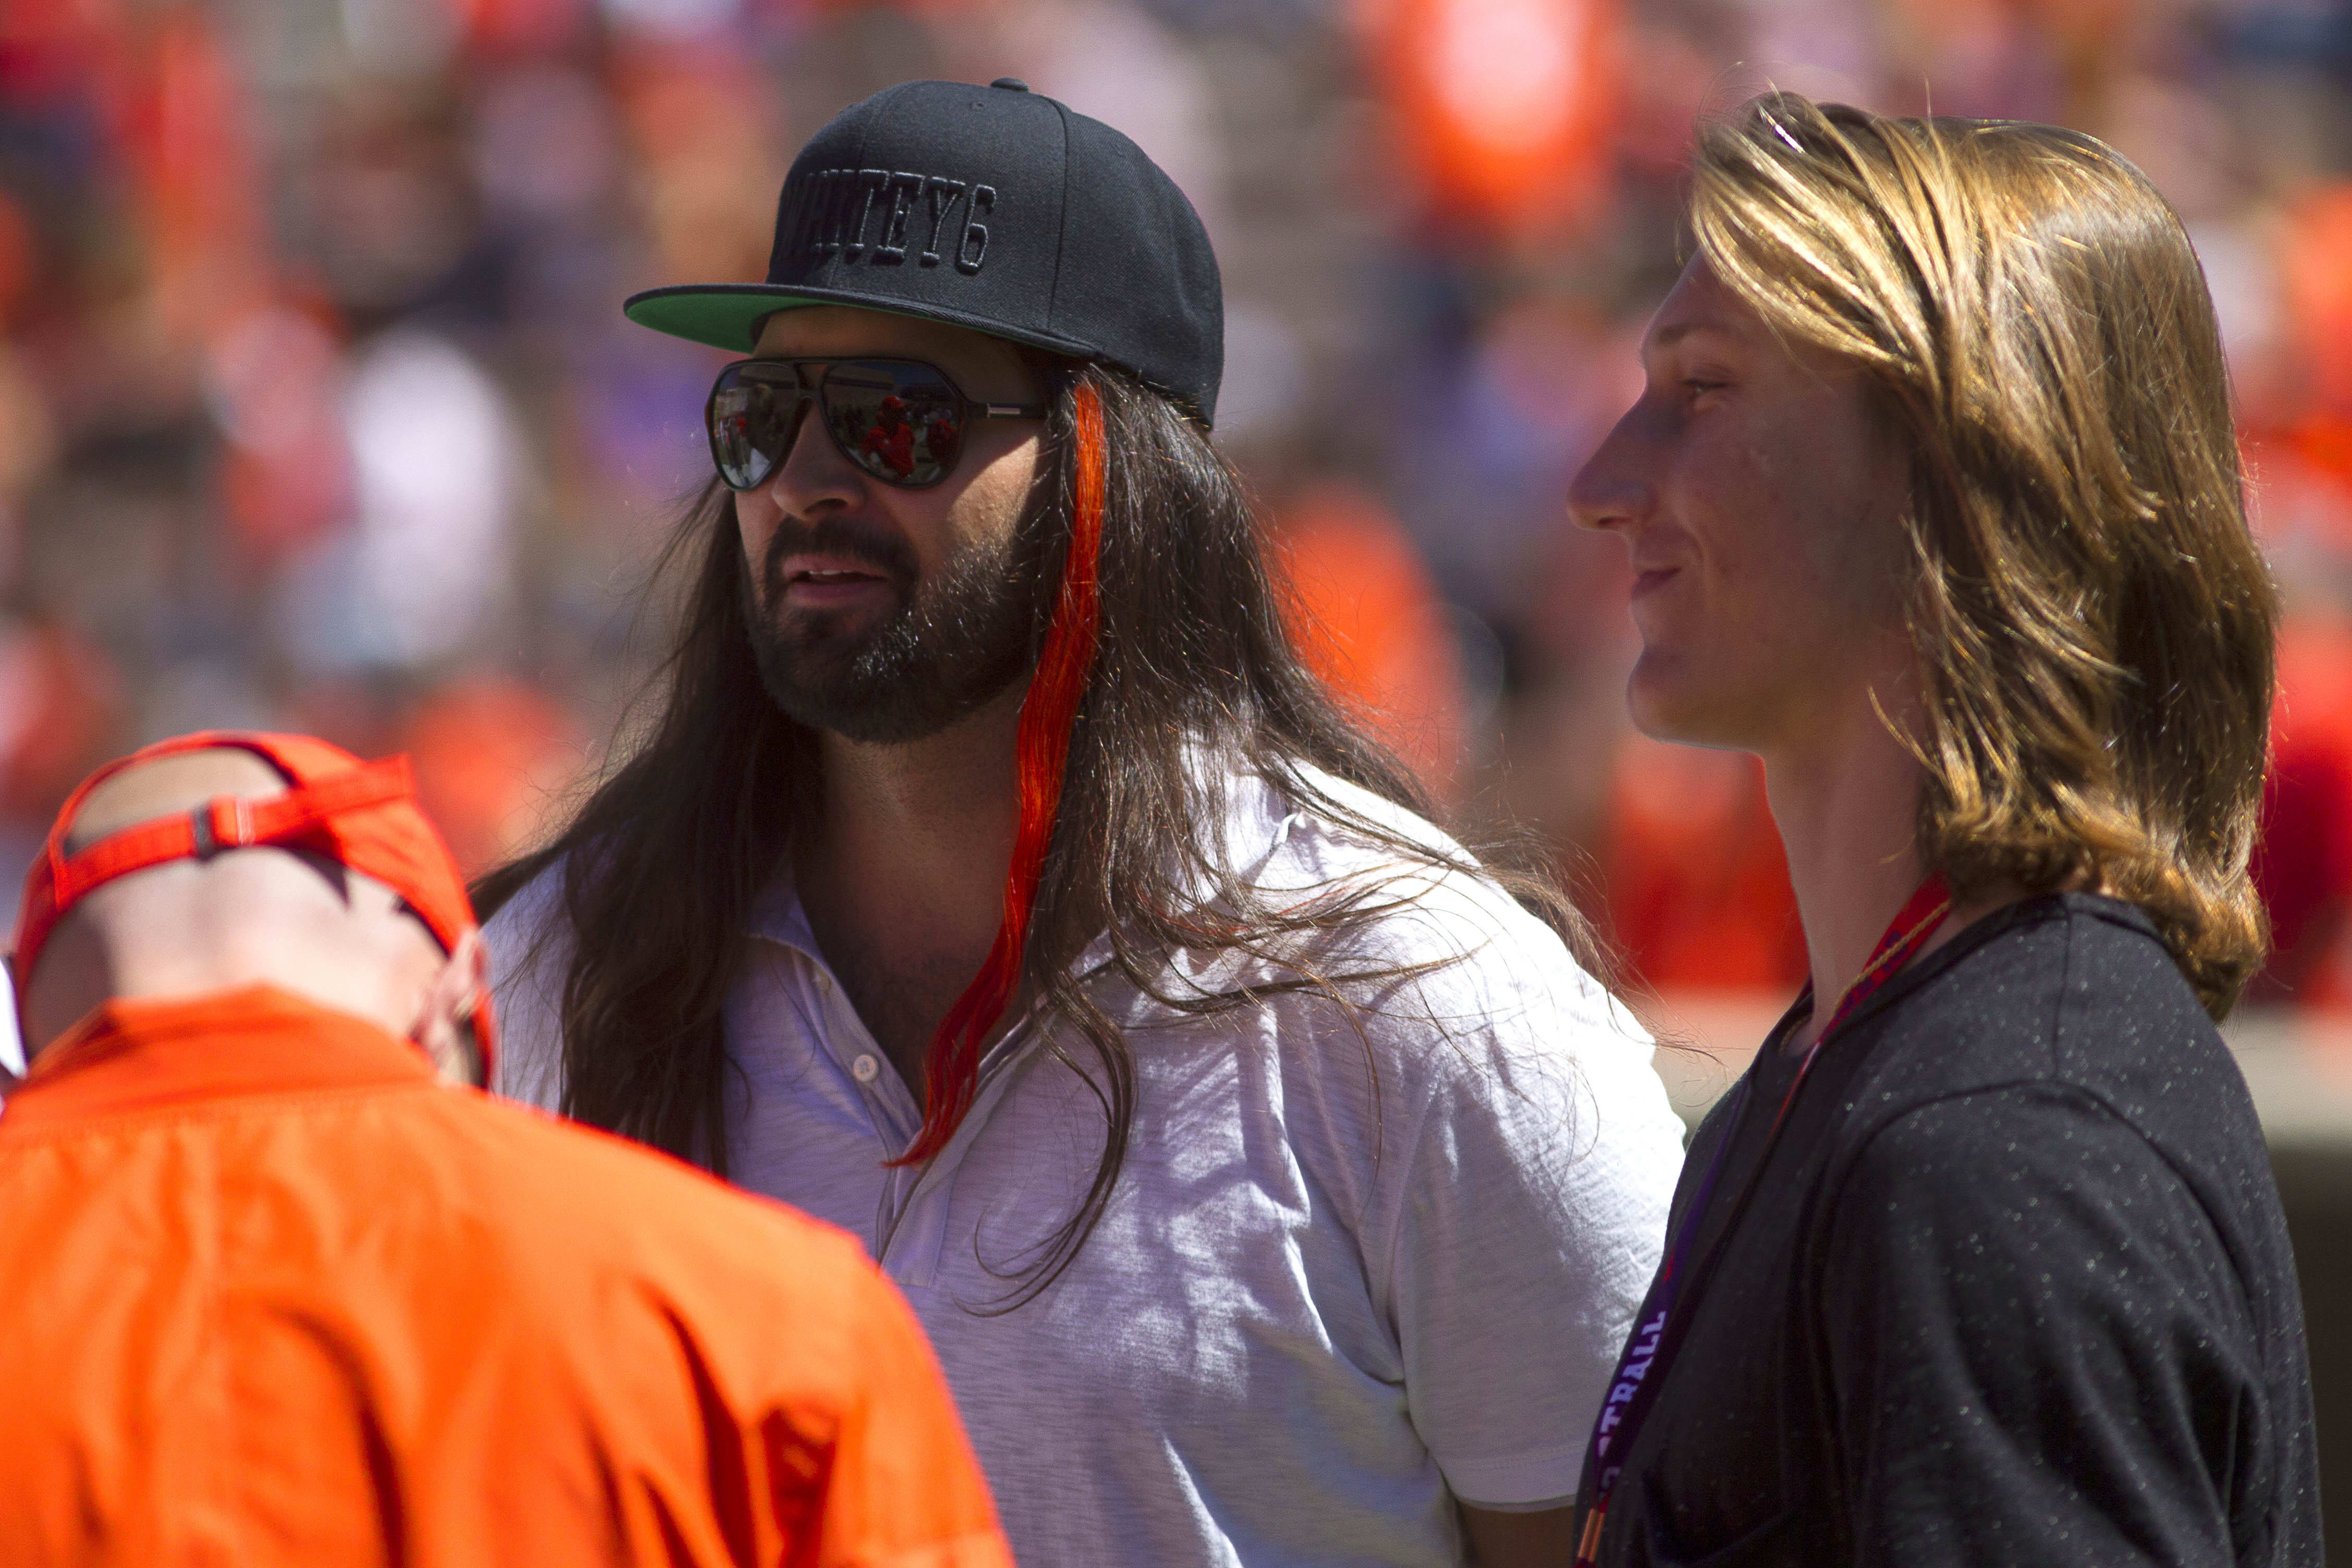 Apr 8, 2017; Clemson, SC, USA; Former Clemson Tigers quarterback Charlie Whitehurst (left) talks with 2018 quarterback commit Trevor Lawrence (right) on the sidelines prior to the Clemson spring game at Memorial Stadium. Mandatory Credit: Joshua S. Kelly-USA TODAY Sports